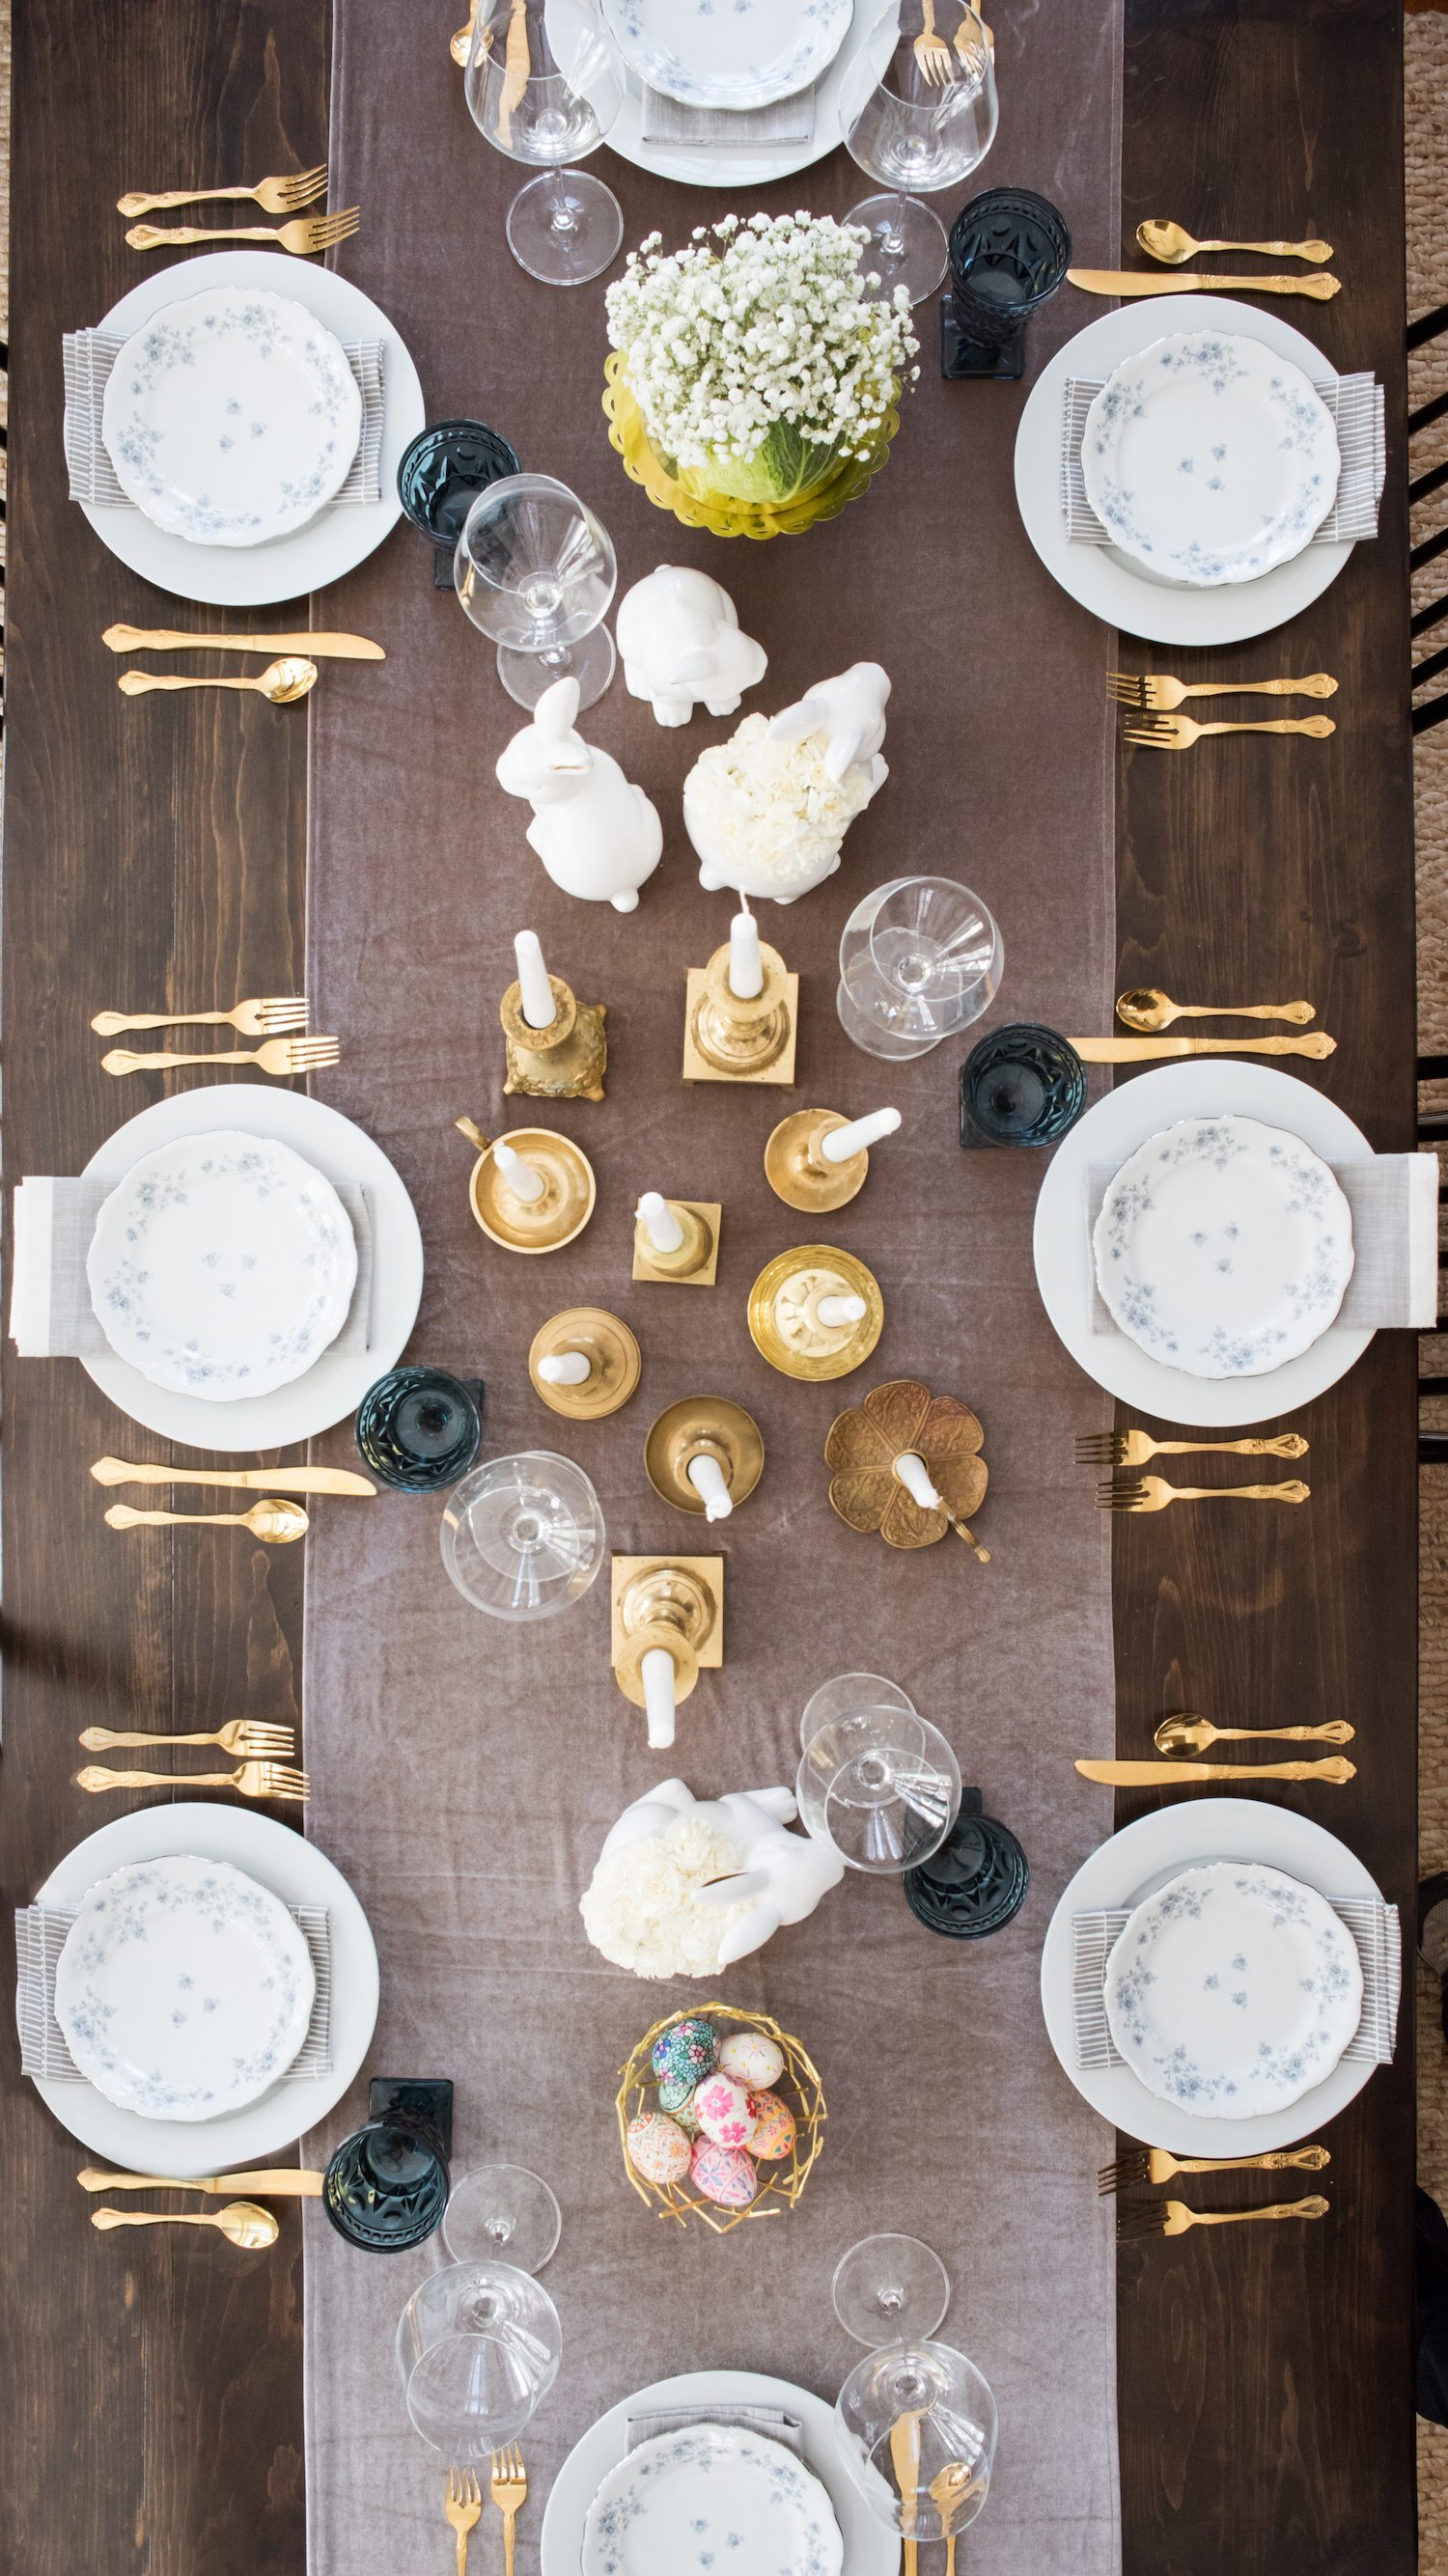 A Modern Elegant Easter Dinner Table | Click through to visit @cydconverse for Easter recipes, entertaining tips, party ideas, Easter recipes and more!